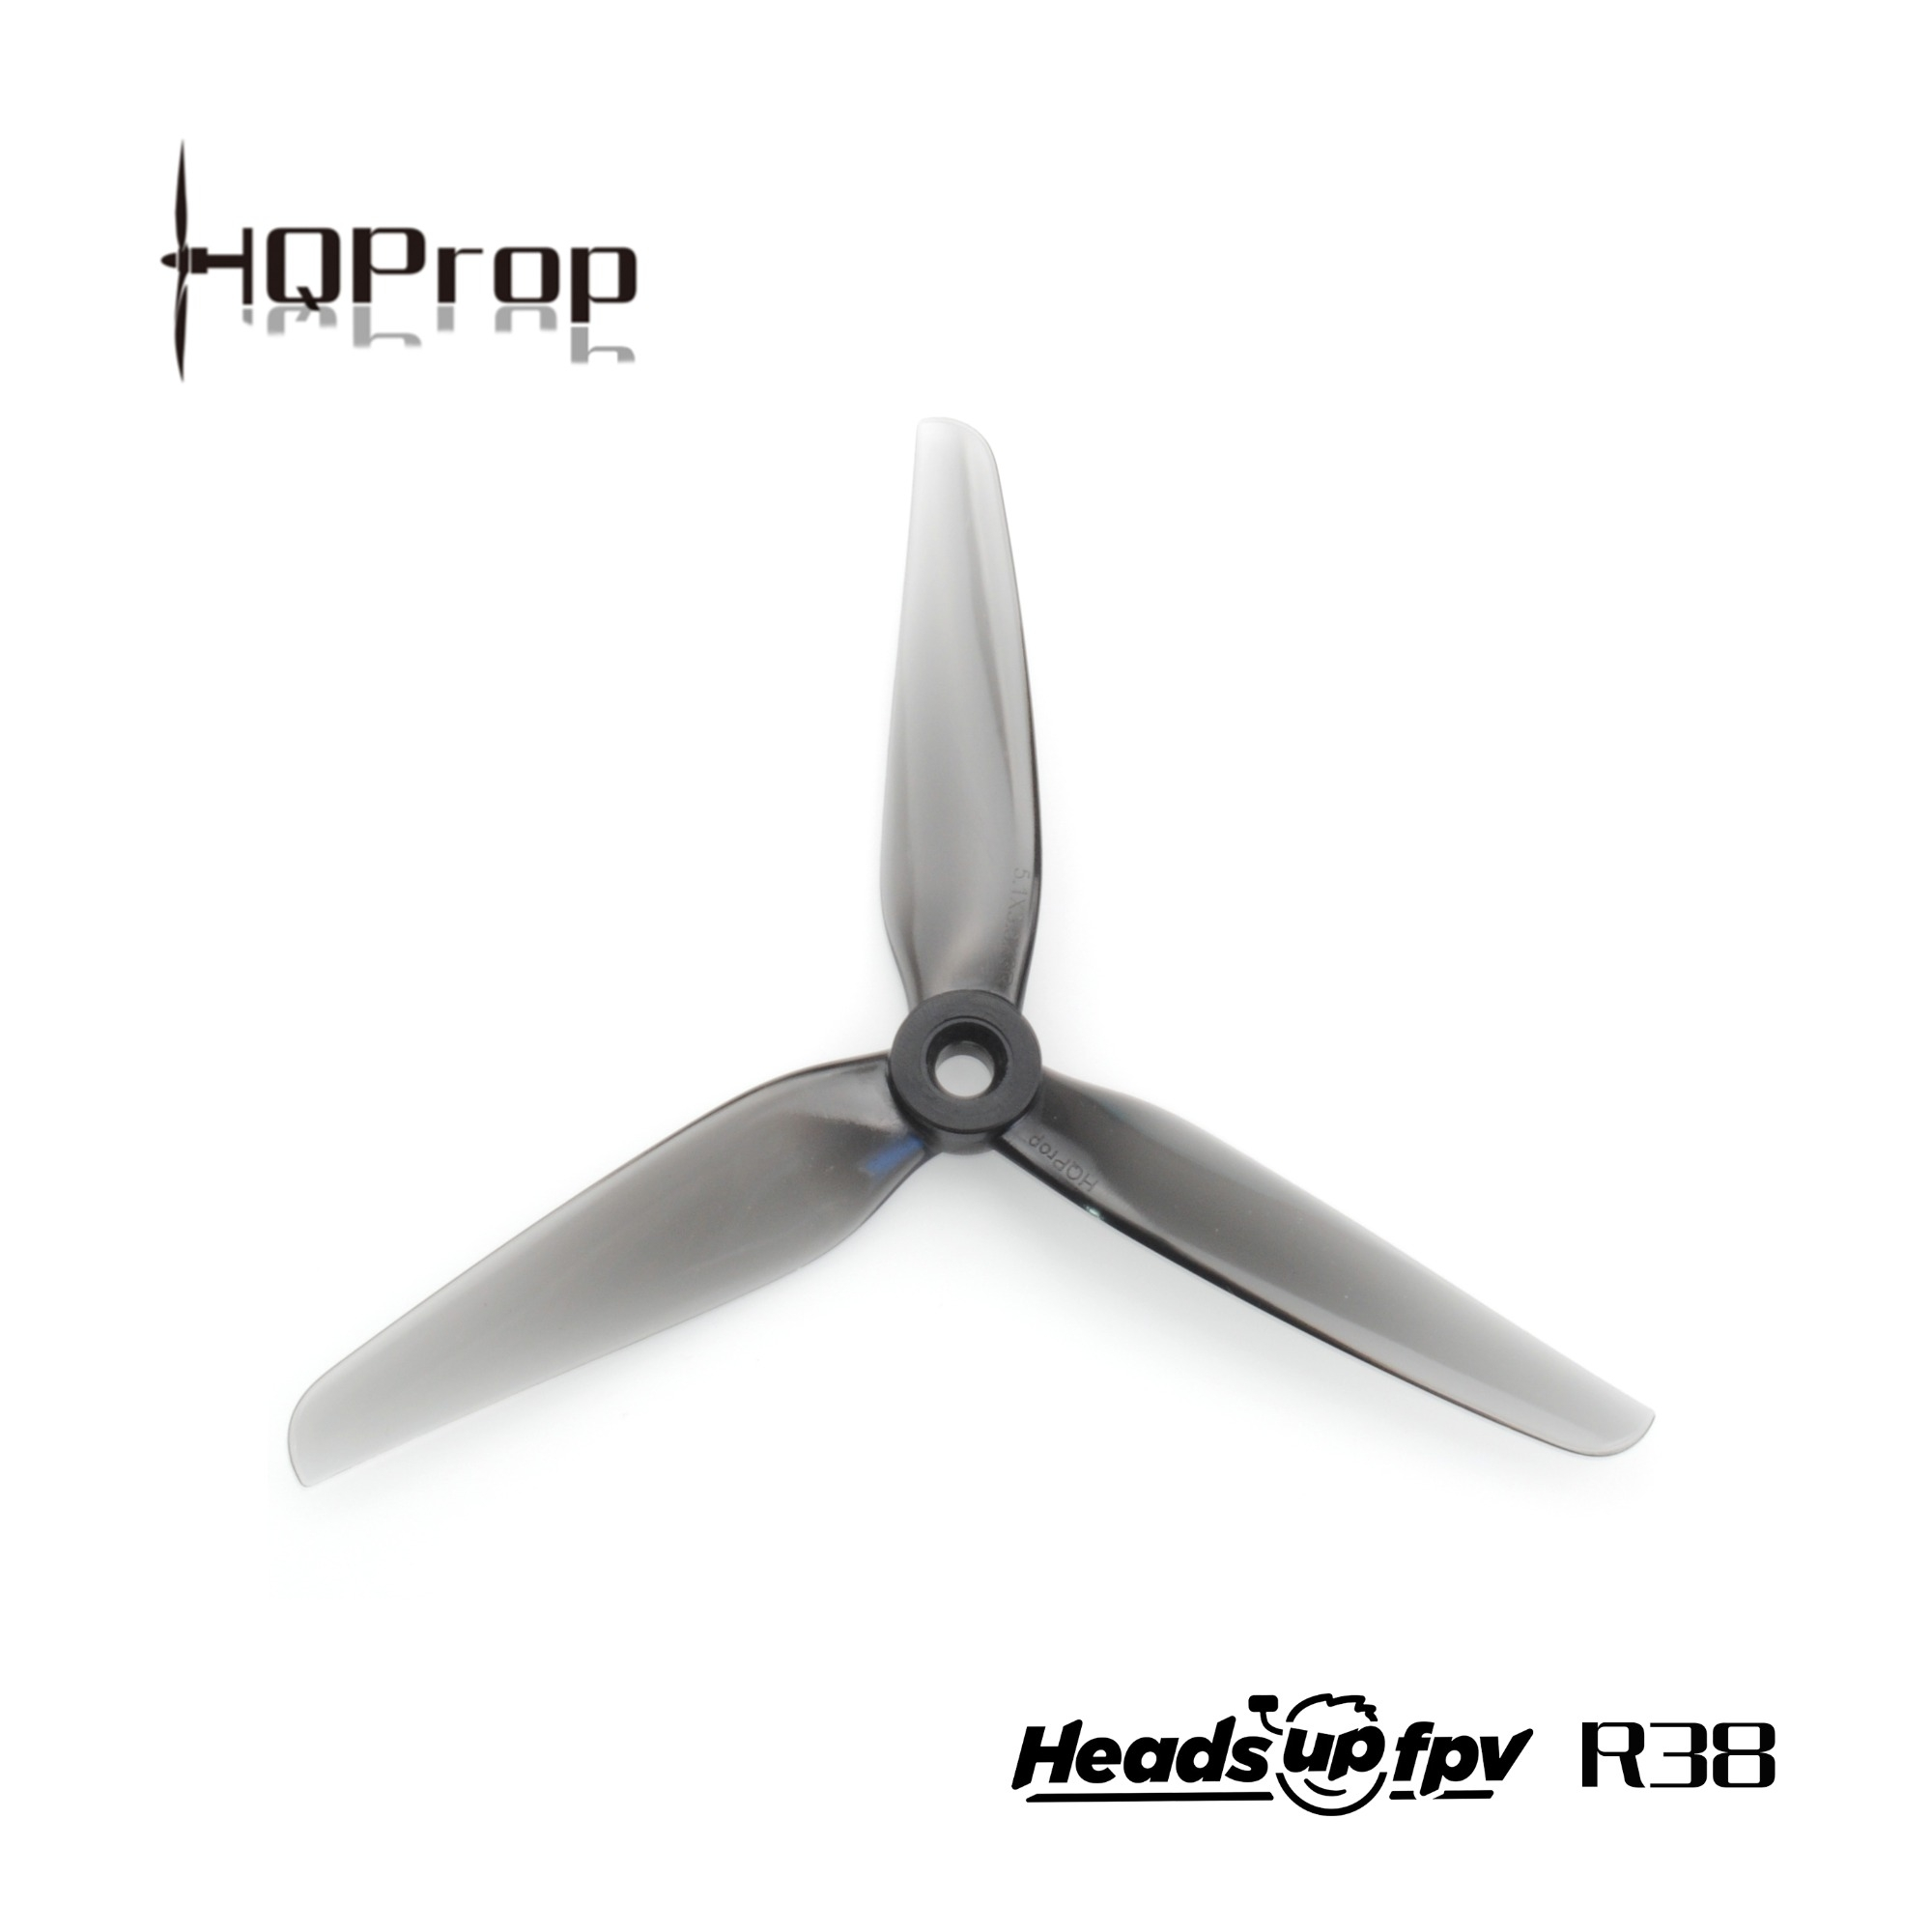 2Pairs HQProp HeadsUp Racing Prop R38 5.1Inch Grey PC 3 Blade Propeller 2CW+2CCW for FPV Racing RC Drone